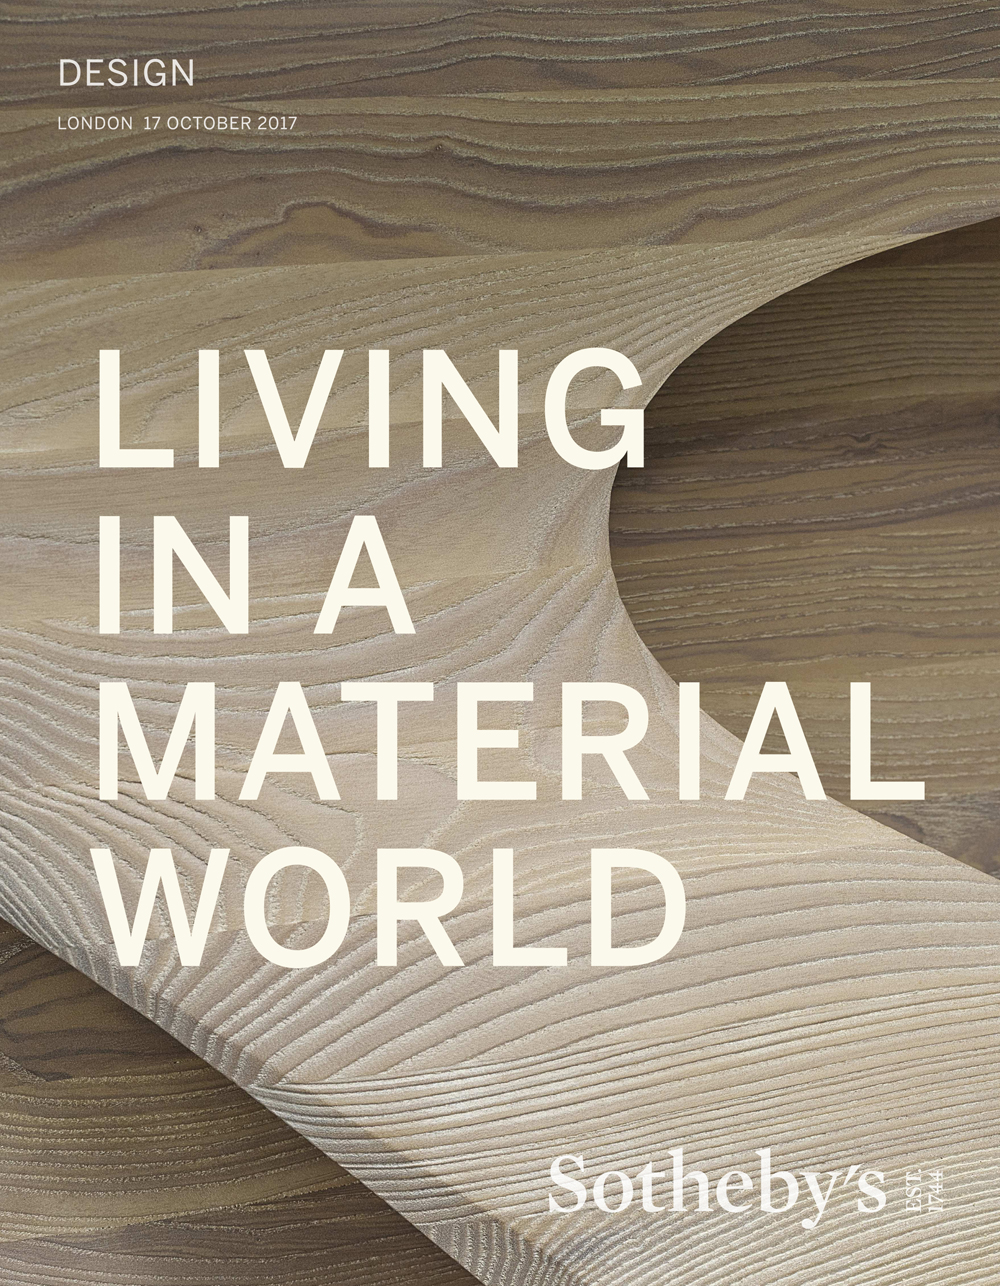 Sothebys_living in a material world_auction_1000px